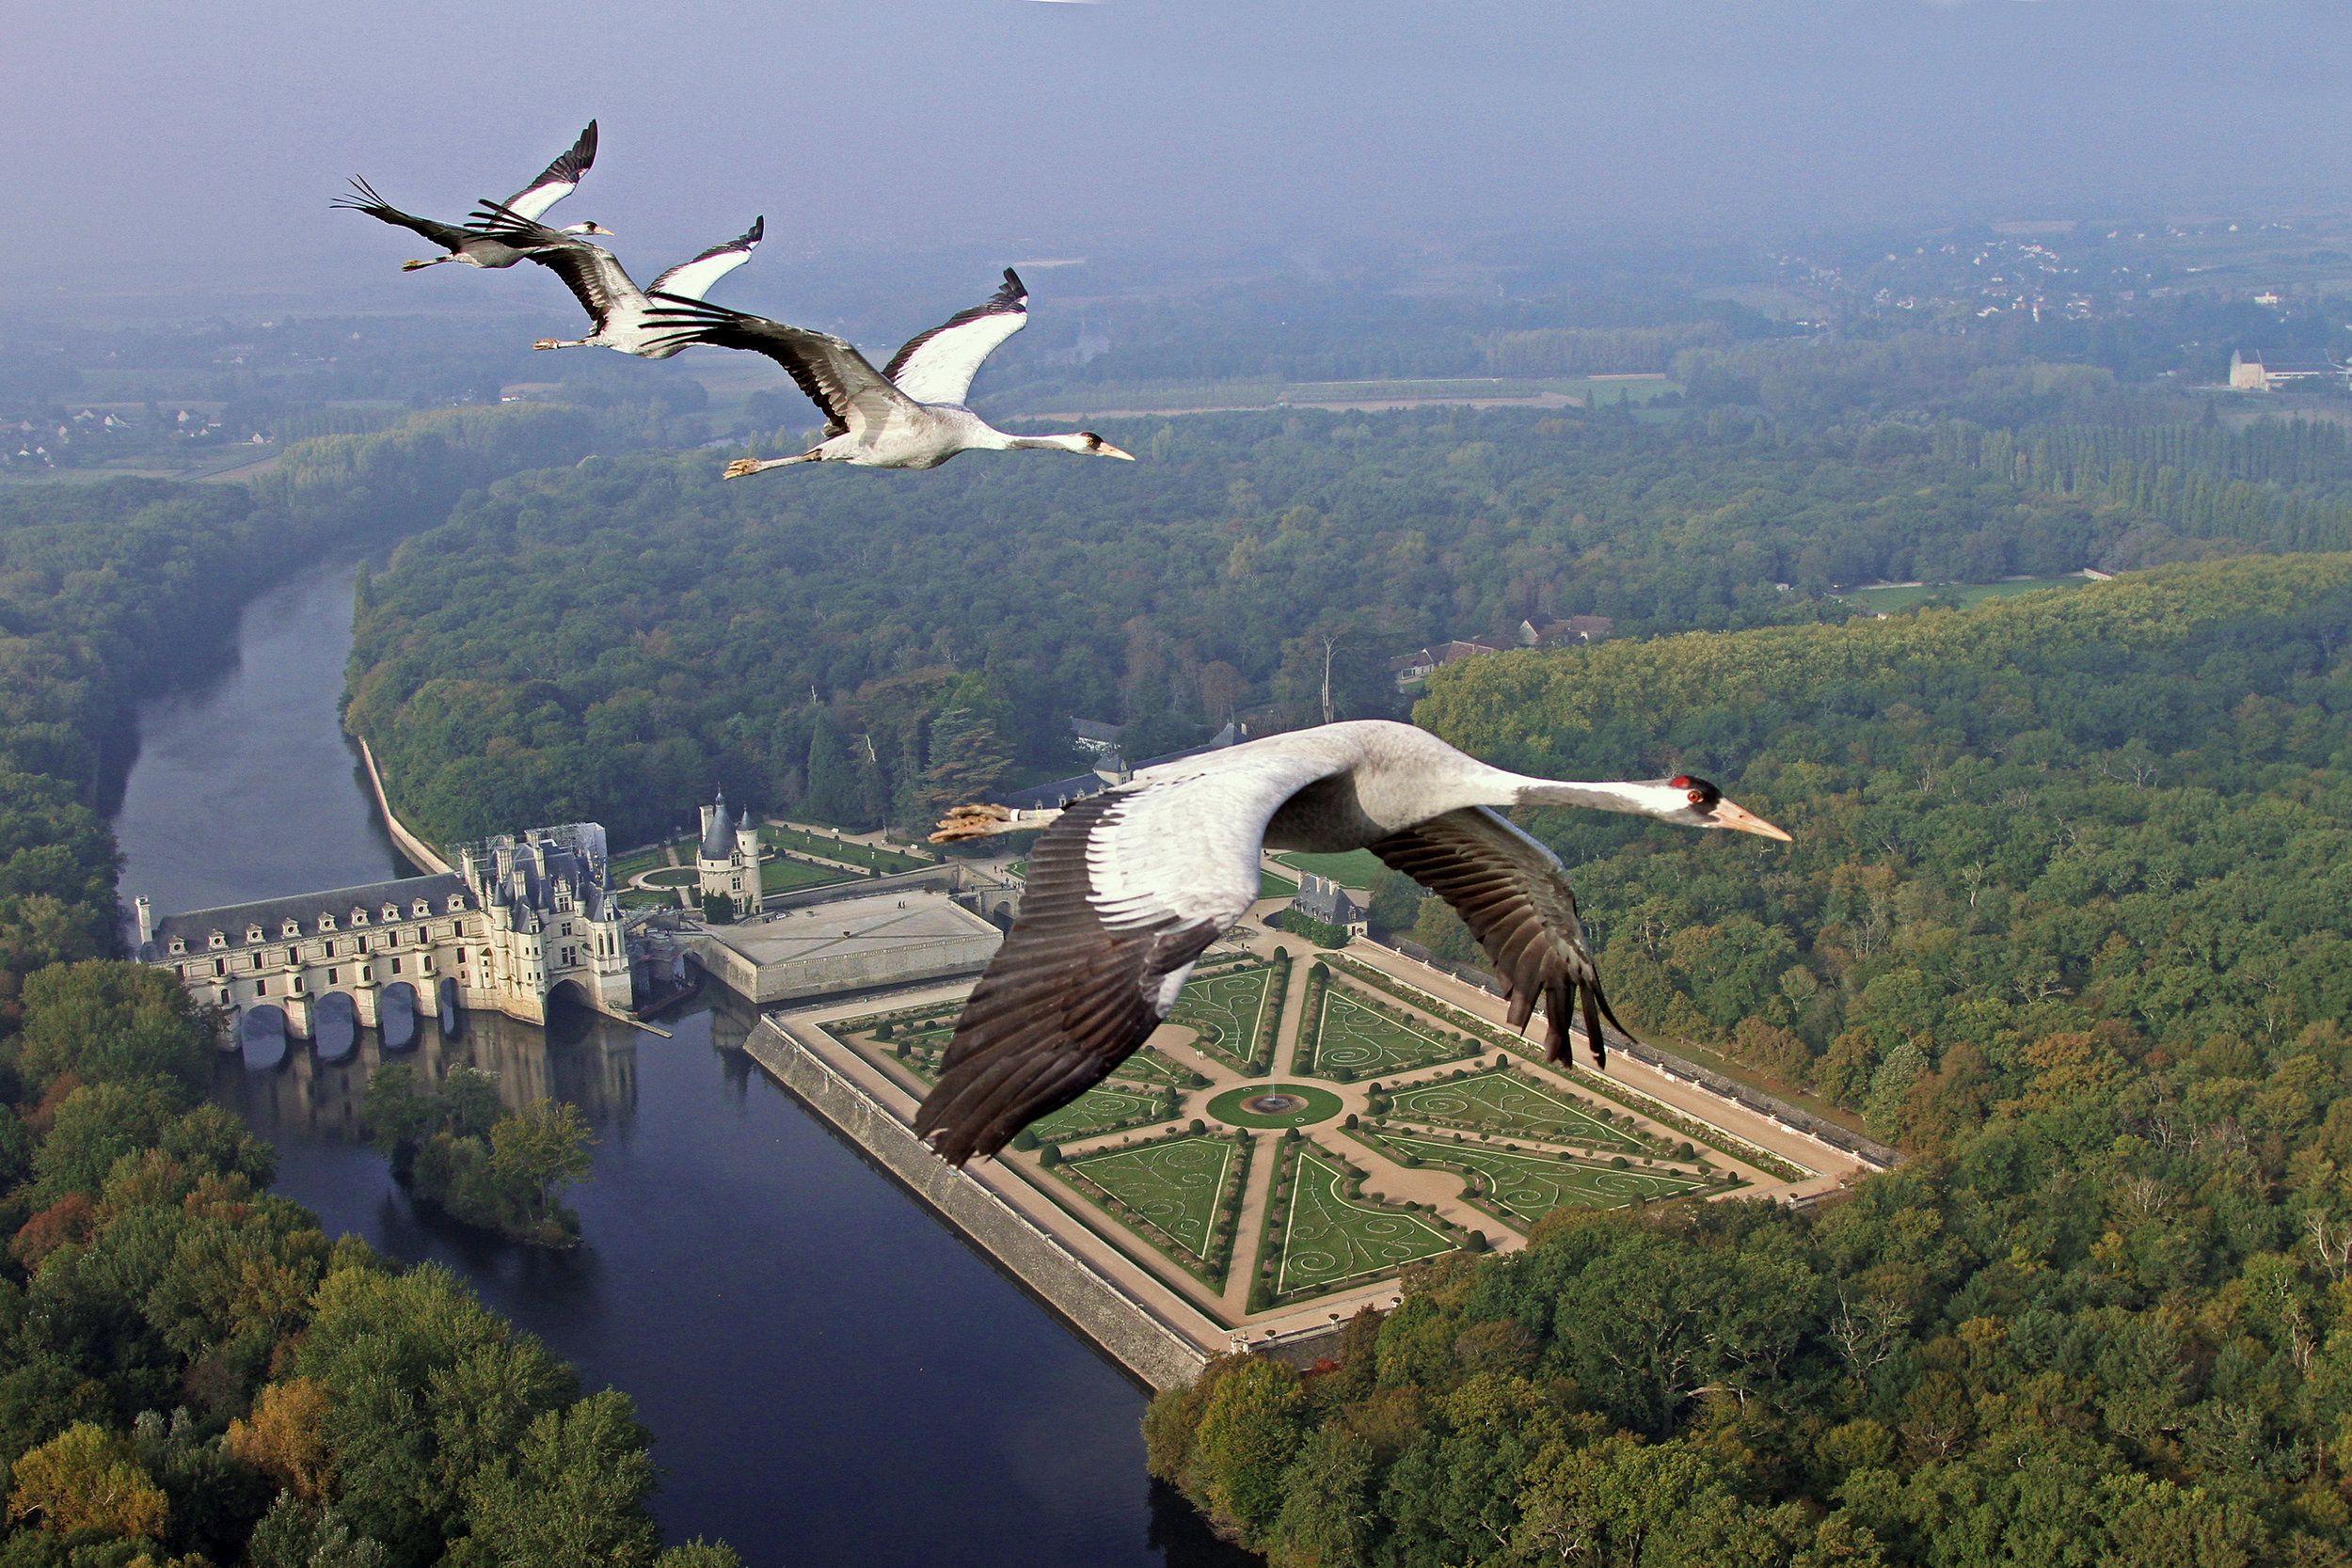 Earthflight_Common_Crane_03_1.jpg